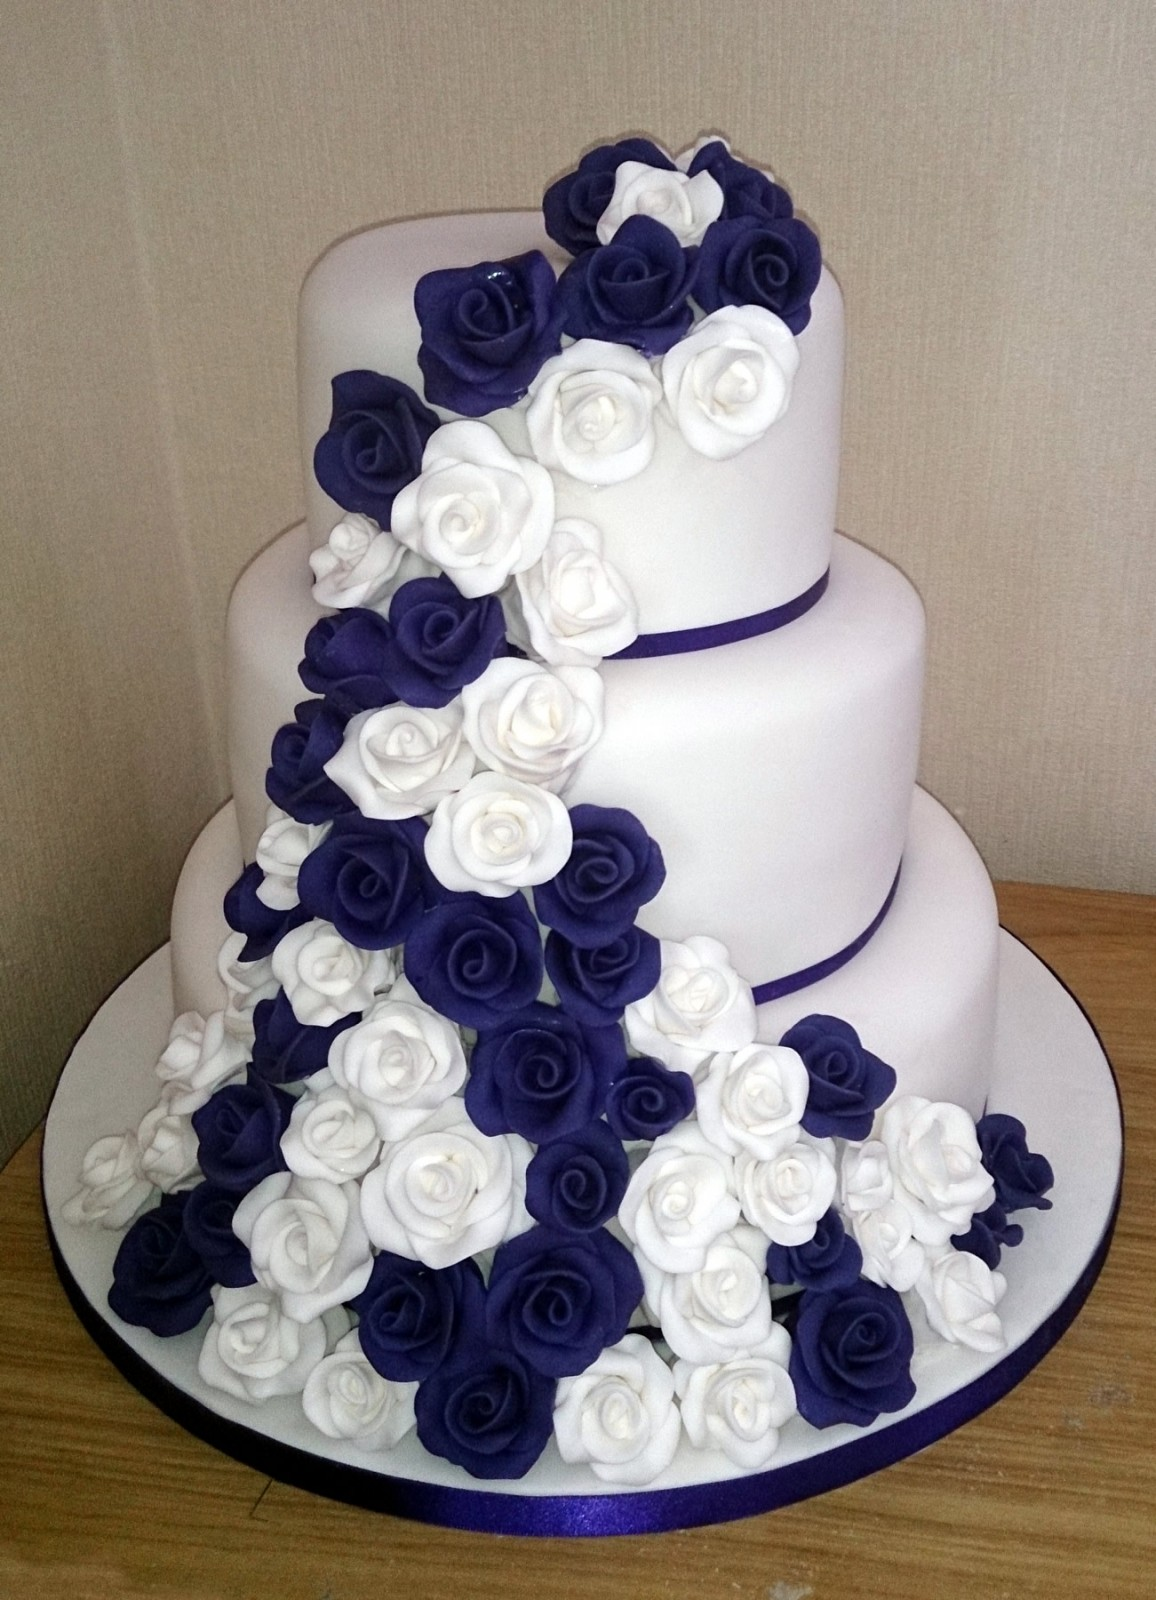 3 Tier White and Purple Rose Wedding Cake « Susie\'s Cakes